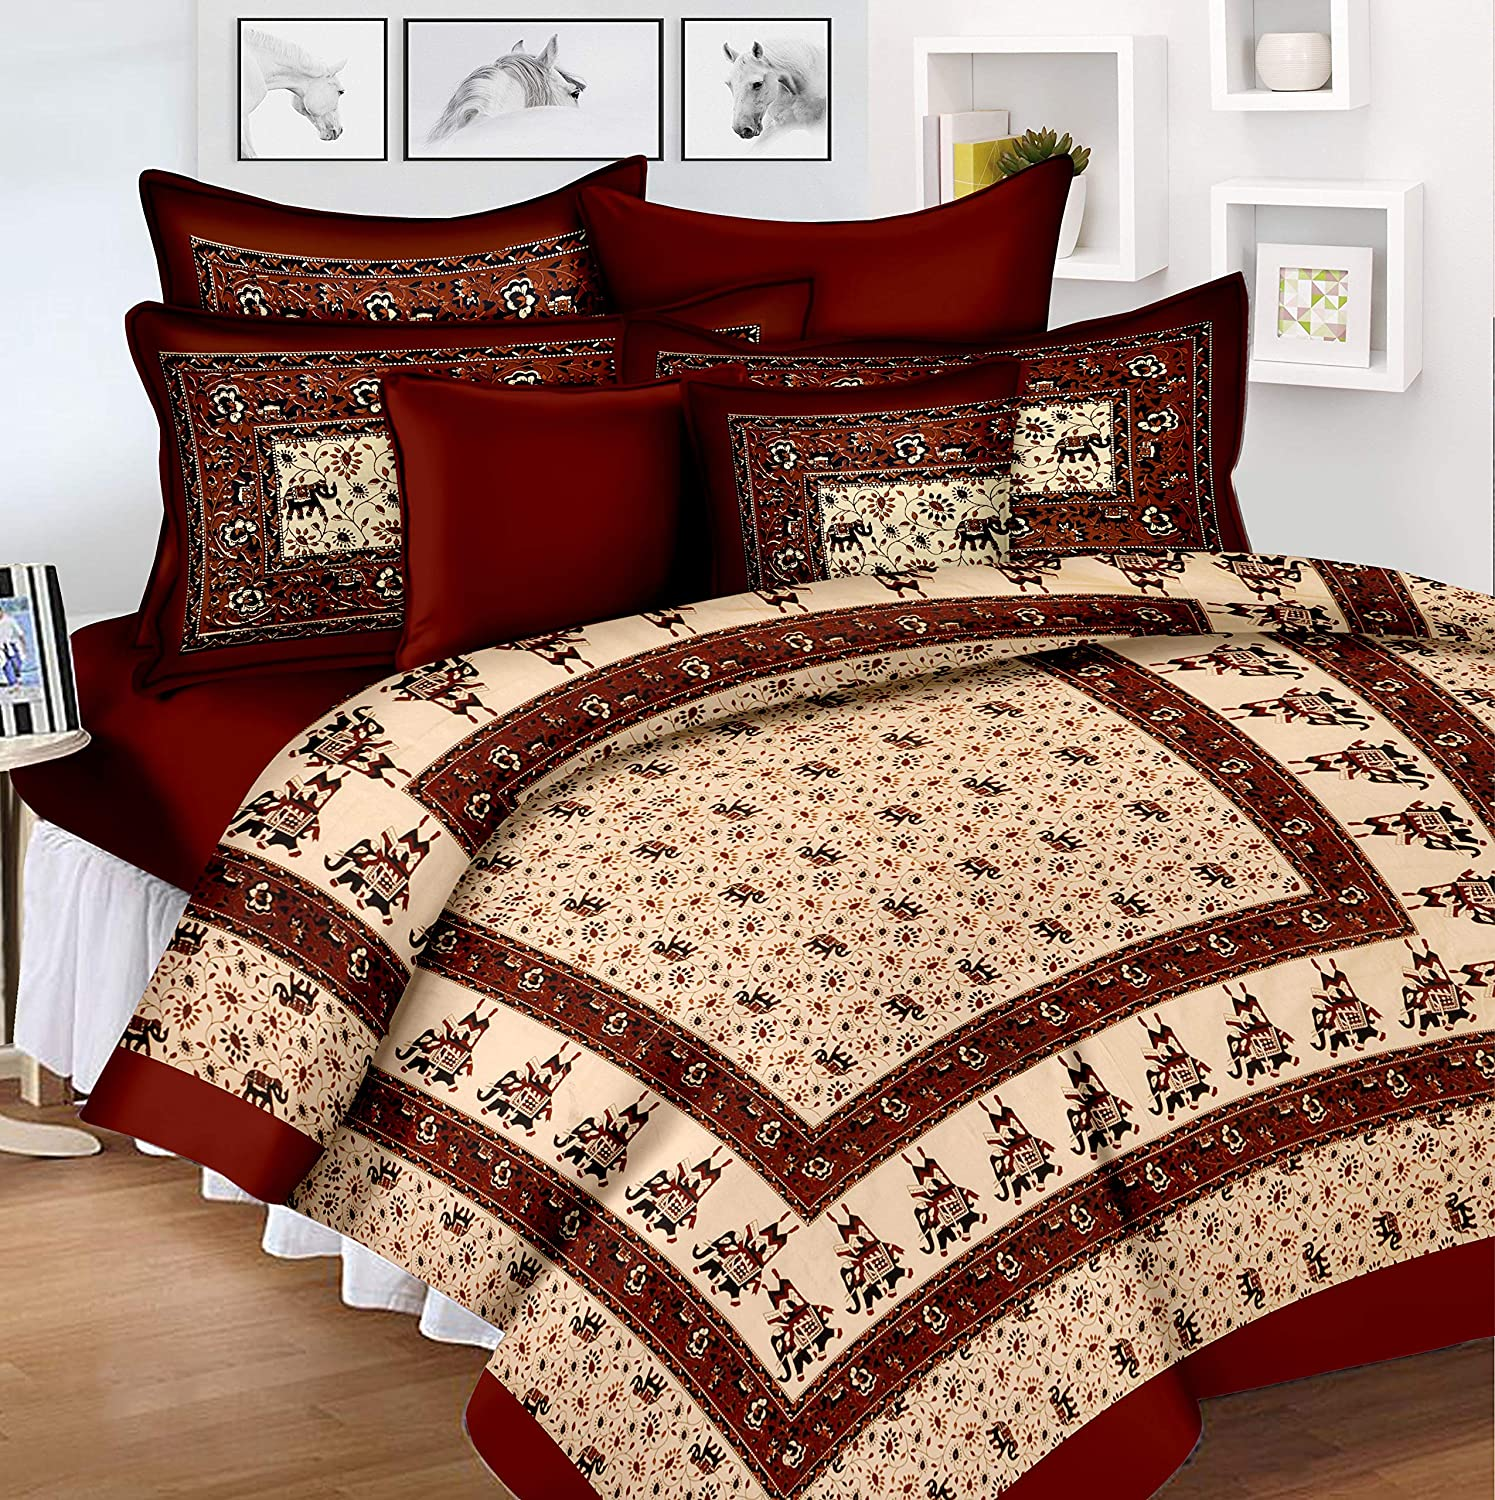 bd3f01a65b Buy Lali Prints Jaipuri Block Print 185 TC Cotton Bedsheet with 2 Pillow  Covers - King Size, Red Online at Low Prices in India - Amazon.in